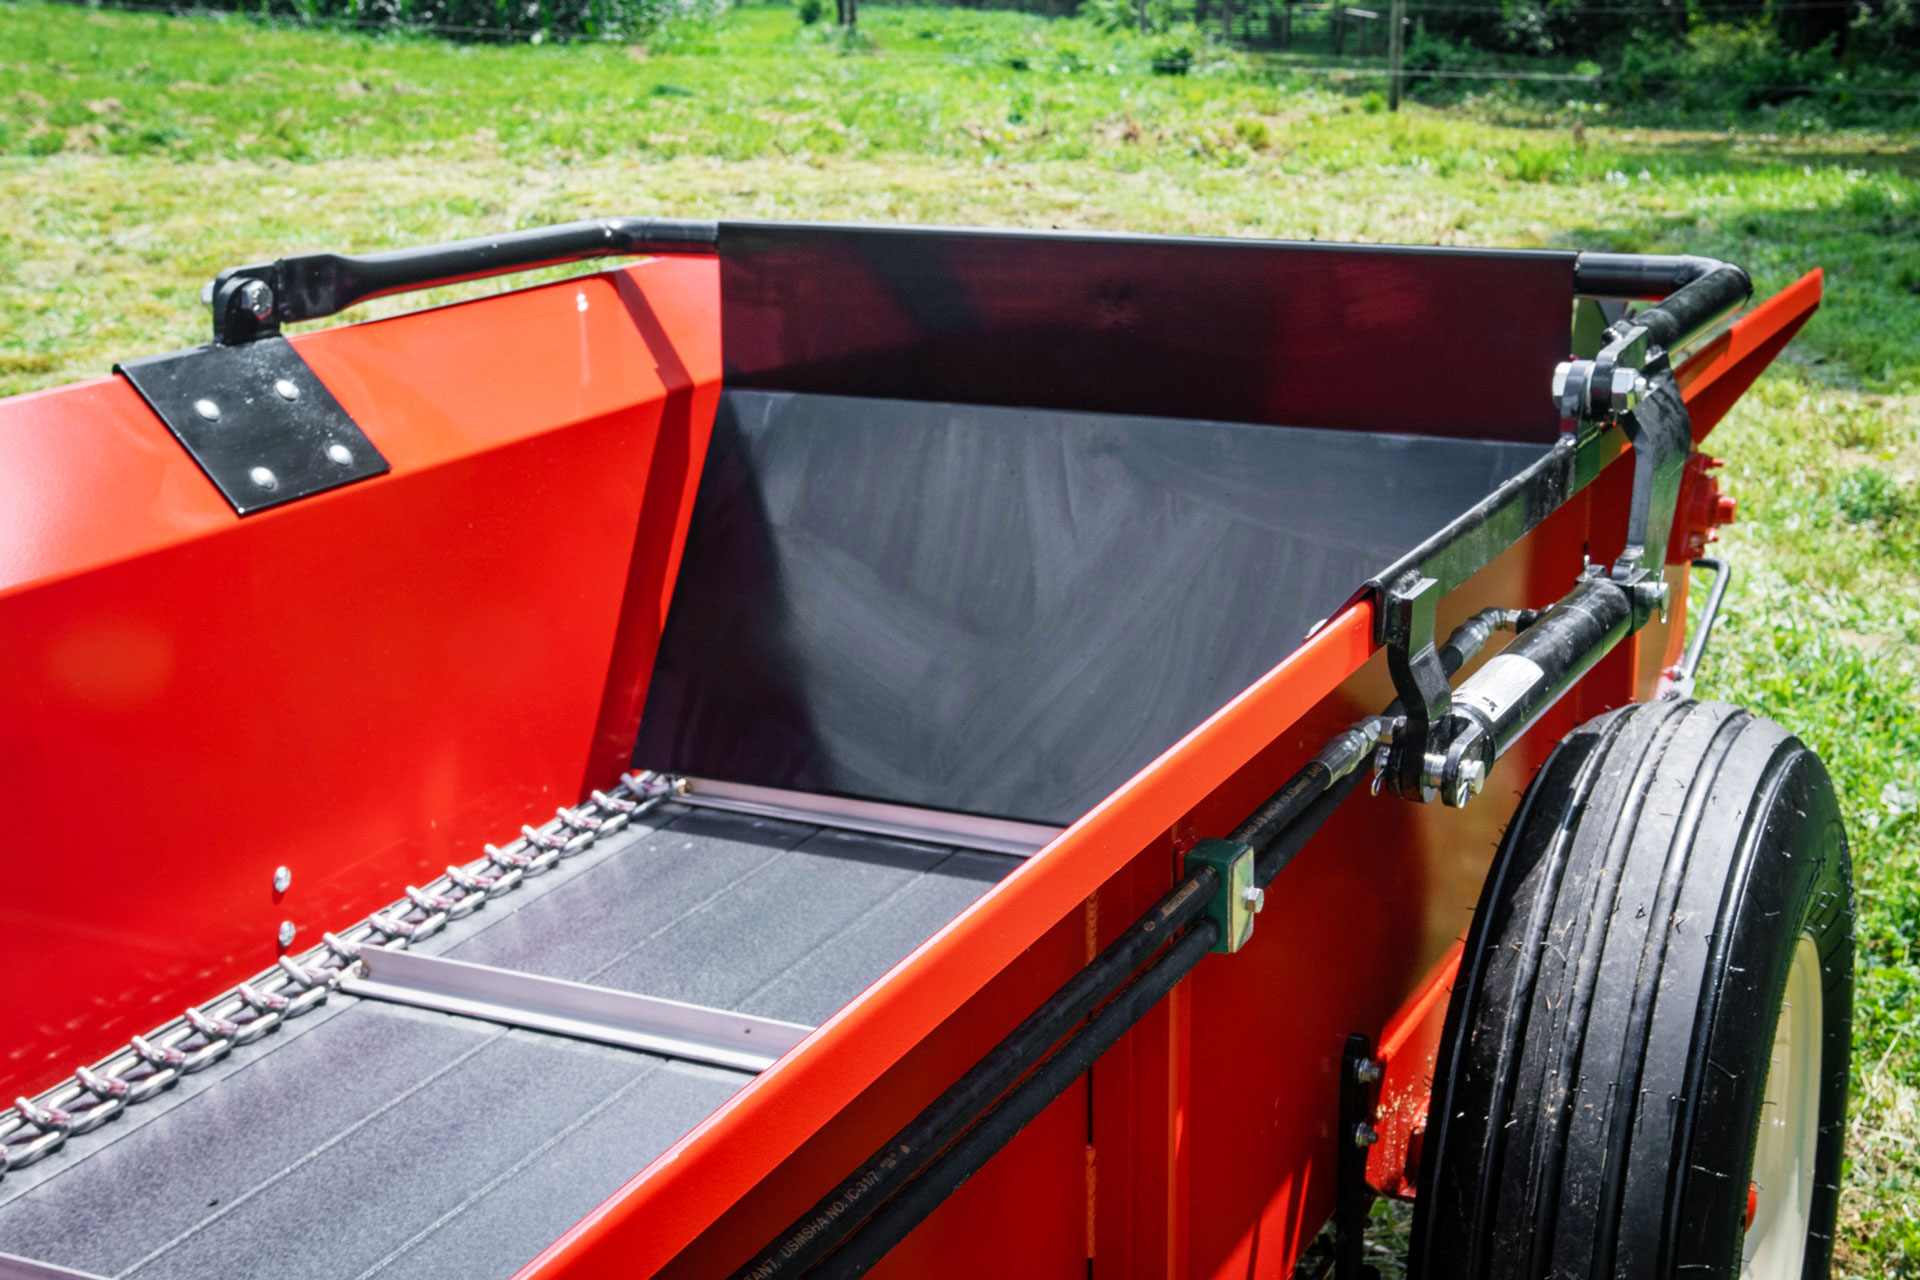 Large PTO farm manure spreader with optional hydraulic end gate from conestoga manufacturing.